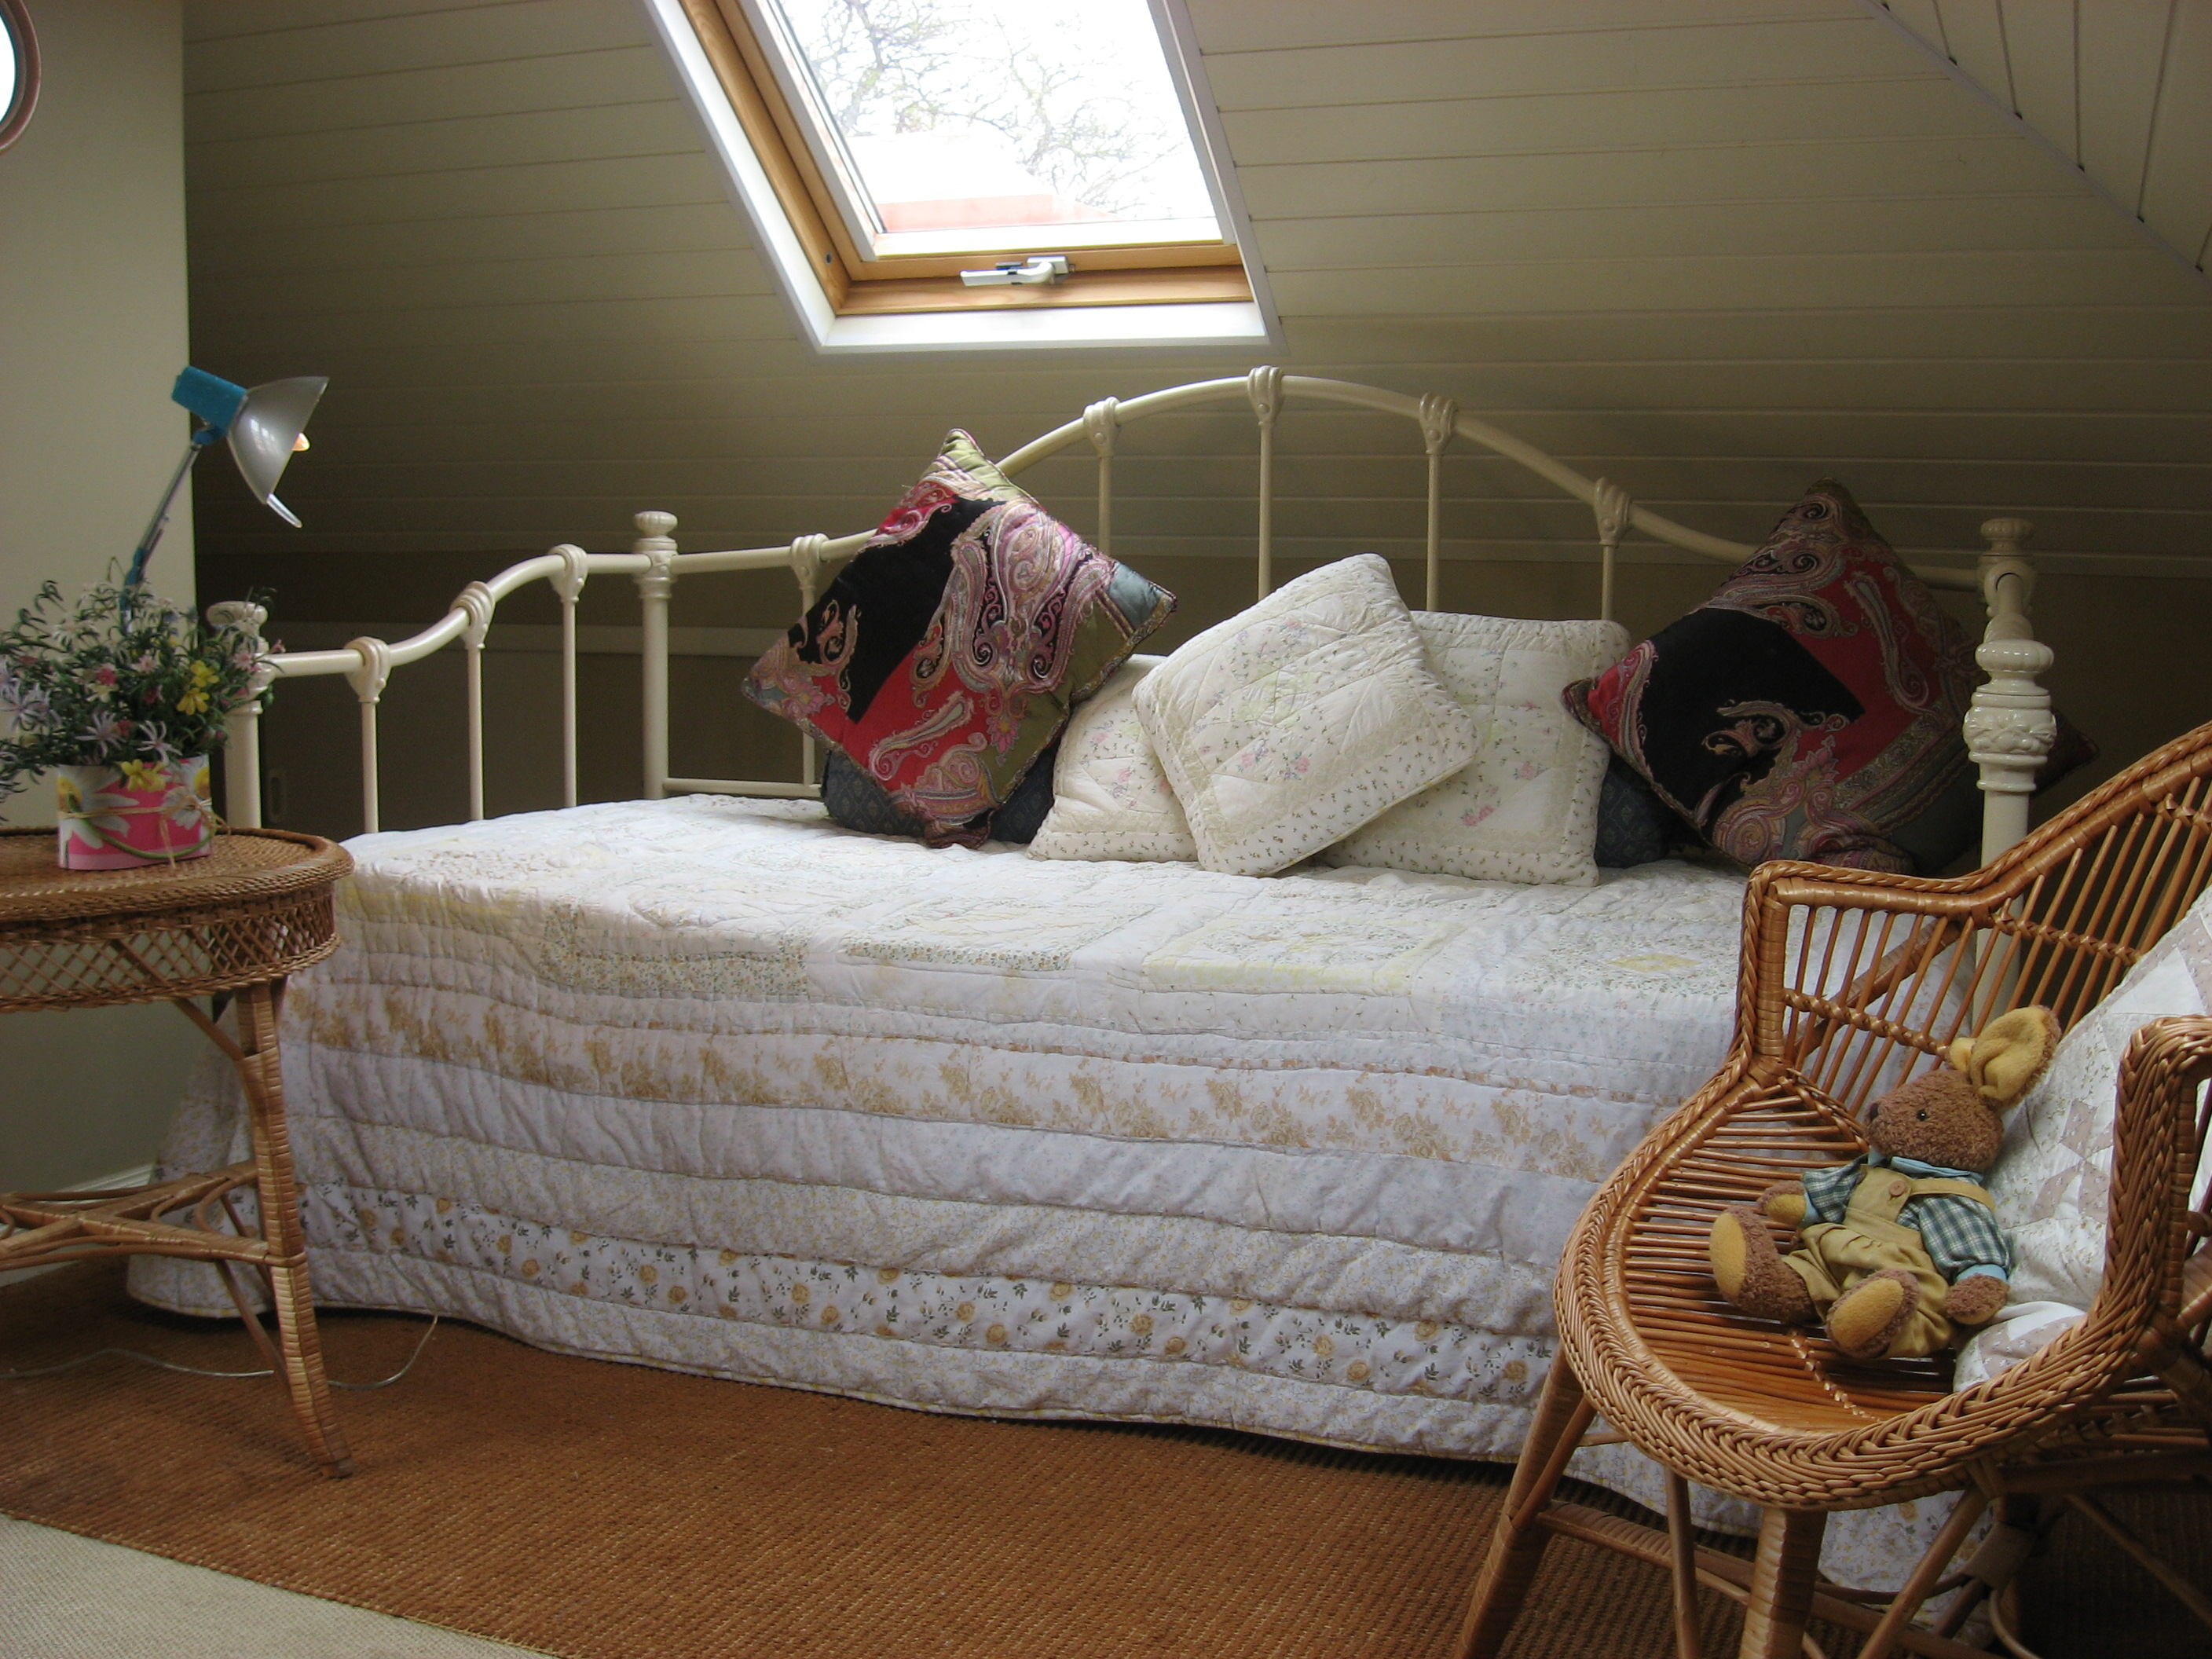 top-floor-room-with-full-size-day-bed-for-adult-or-child-wonderful-views-from-adjoining-terrace